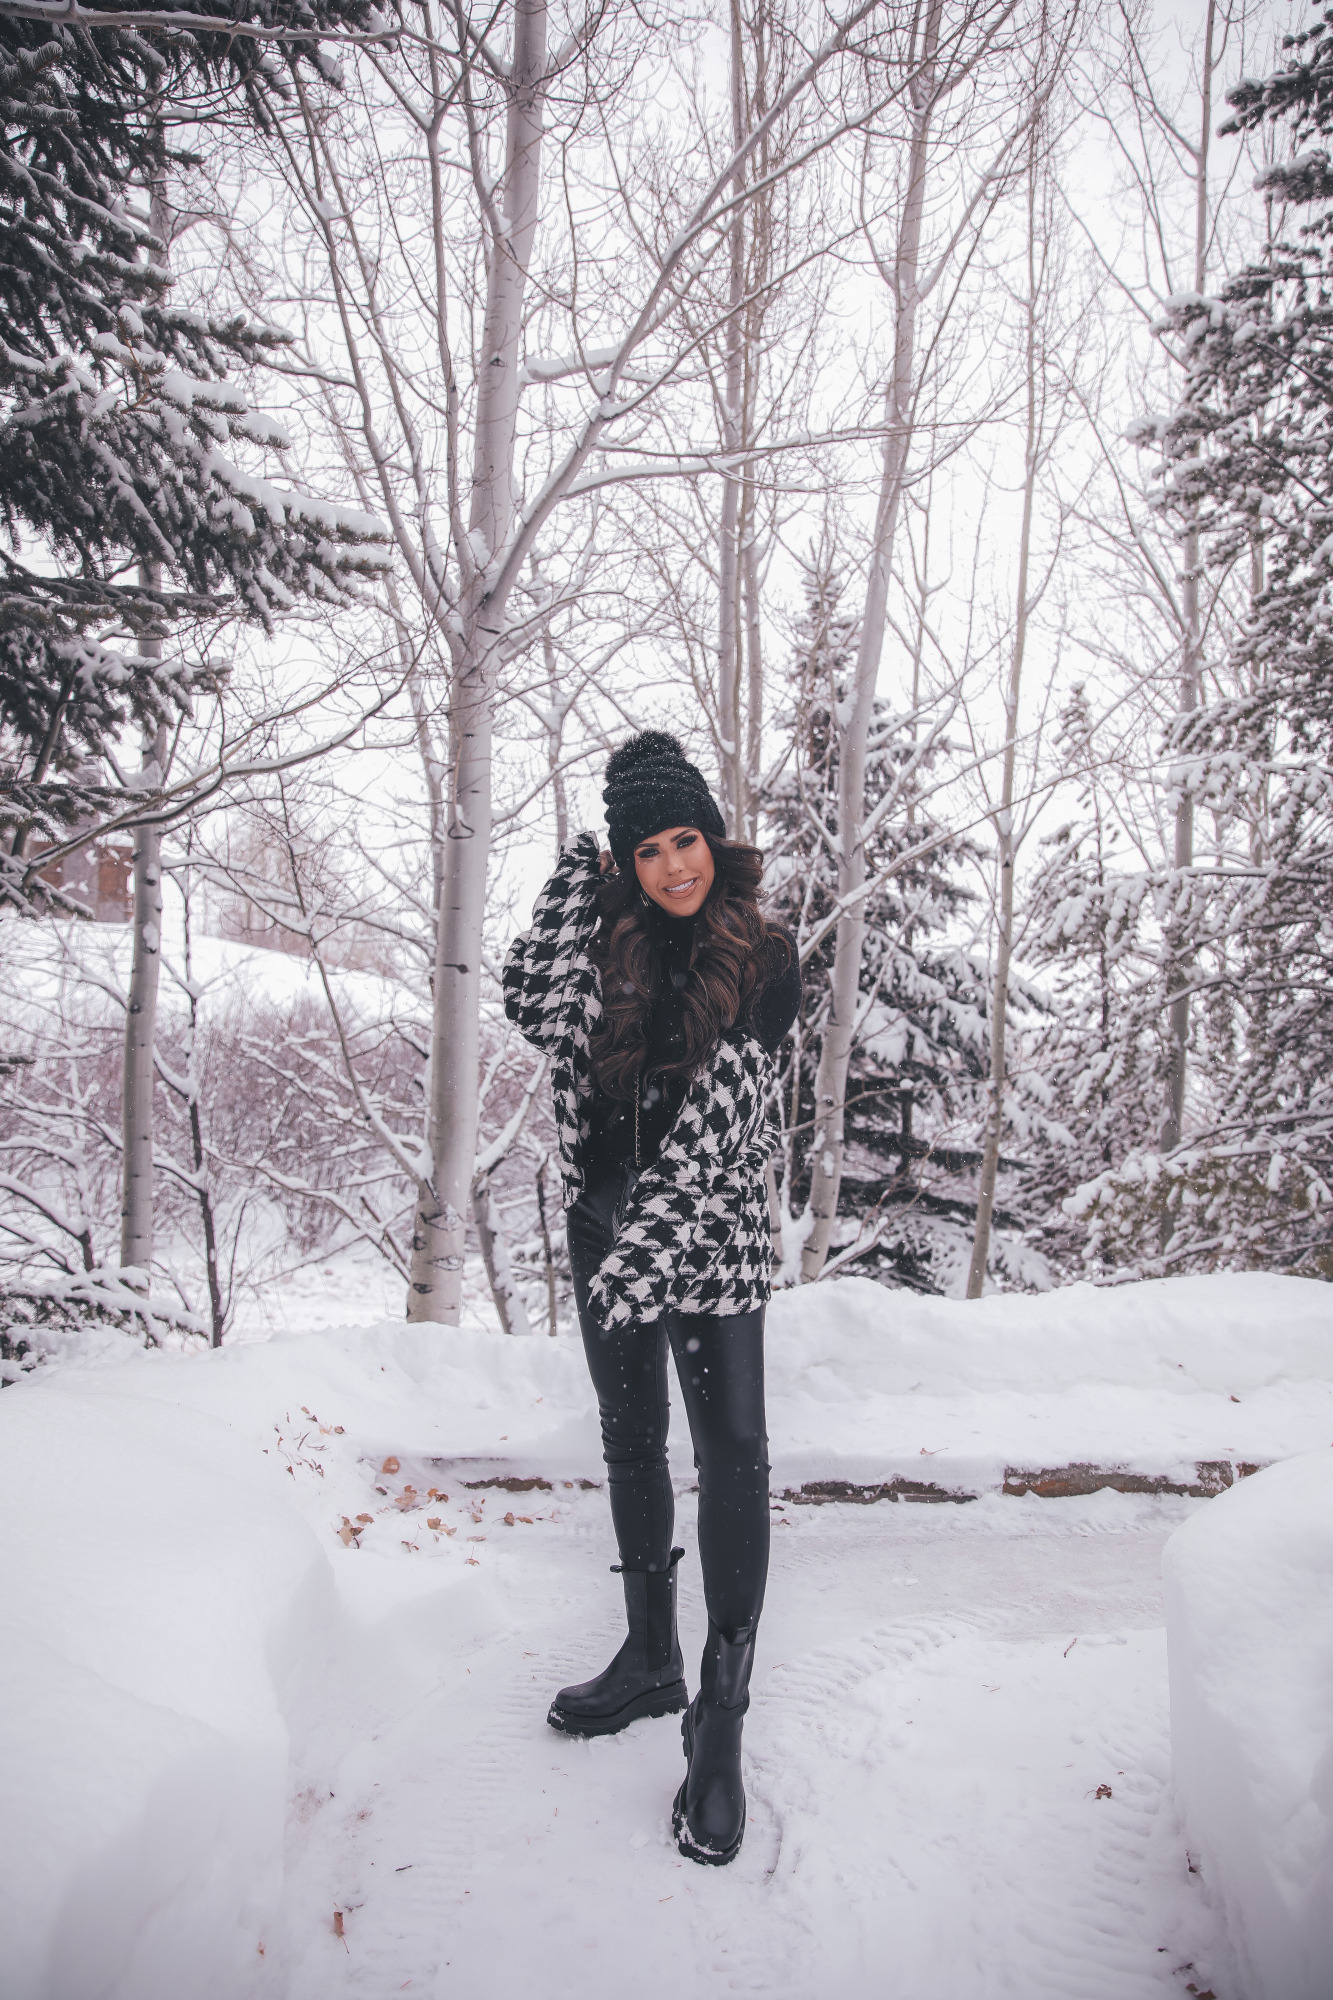 houndstooth shacket storets, lug sole black boot outfit ideas pinterest, jackson hole, winter fashion outfits |Lug Sole Boots by popular US fashion blog, The Sweetest Thing: image of Emily Gemma wearing a Storets black and white houndstooth jacket, Good American bodysuit, BlankNYC faux leather pants, Steve Madden black lug sole boots, BP. sunglasses, TopShop black pom beanie, Chanel handbag, Monica Vinader ring, Rolex watch, Cartier bracelets, and Iconic Nude' + KIM K.W. + White Russian Sparkle lip combo.